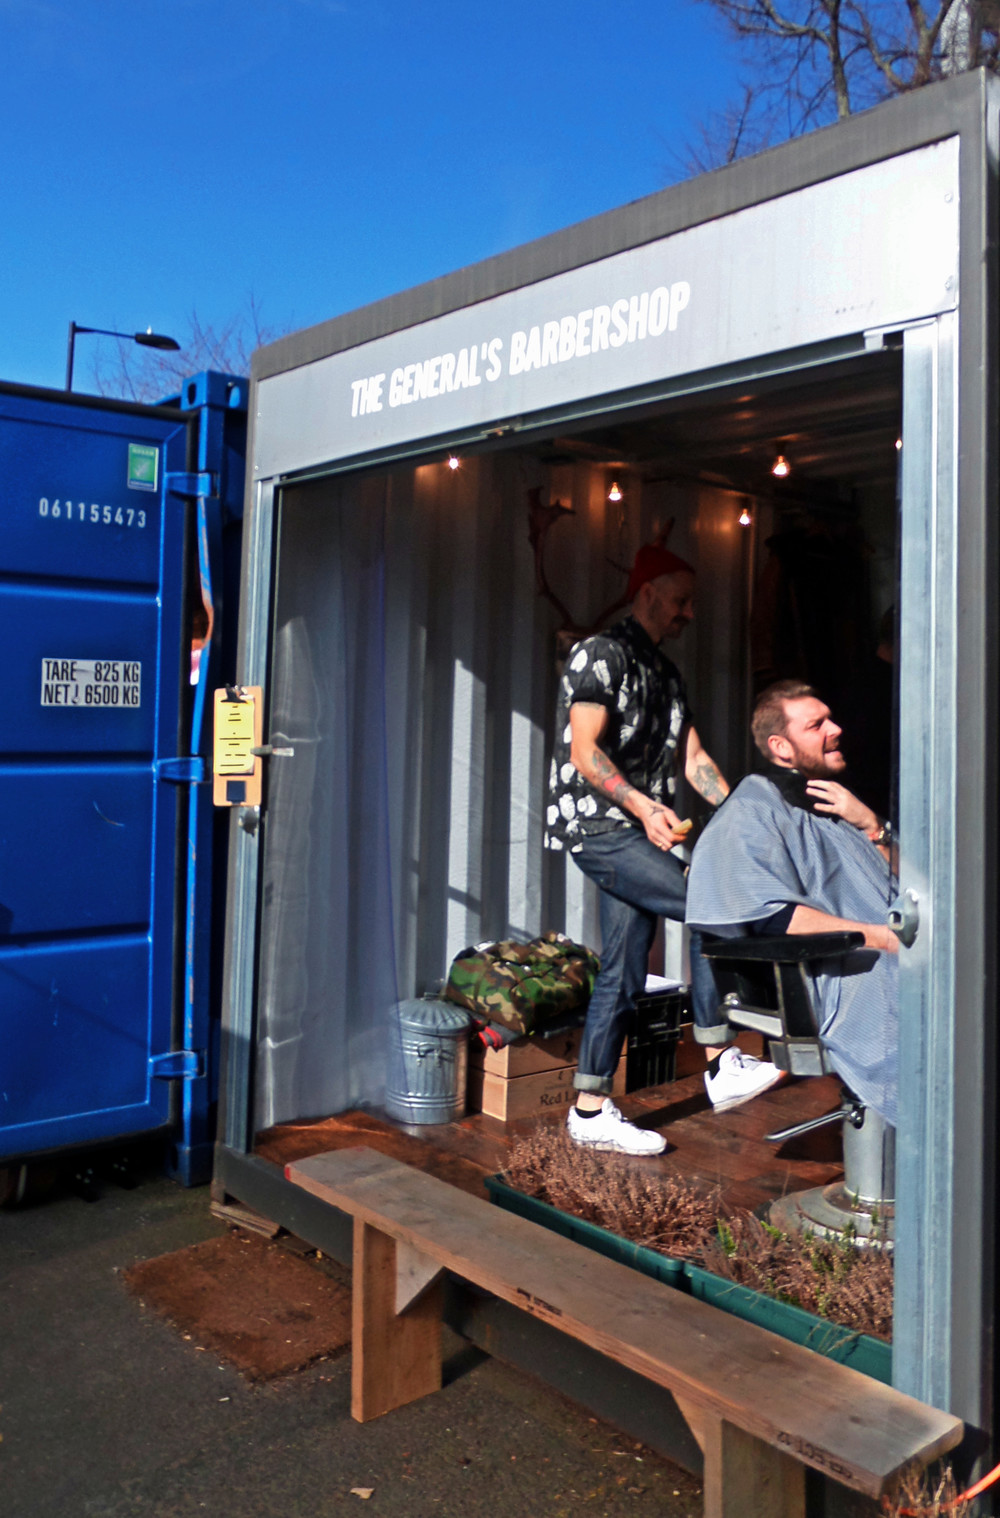 A pop-up barber shop in a container, why not?